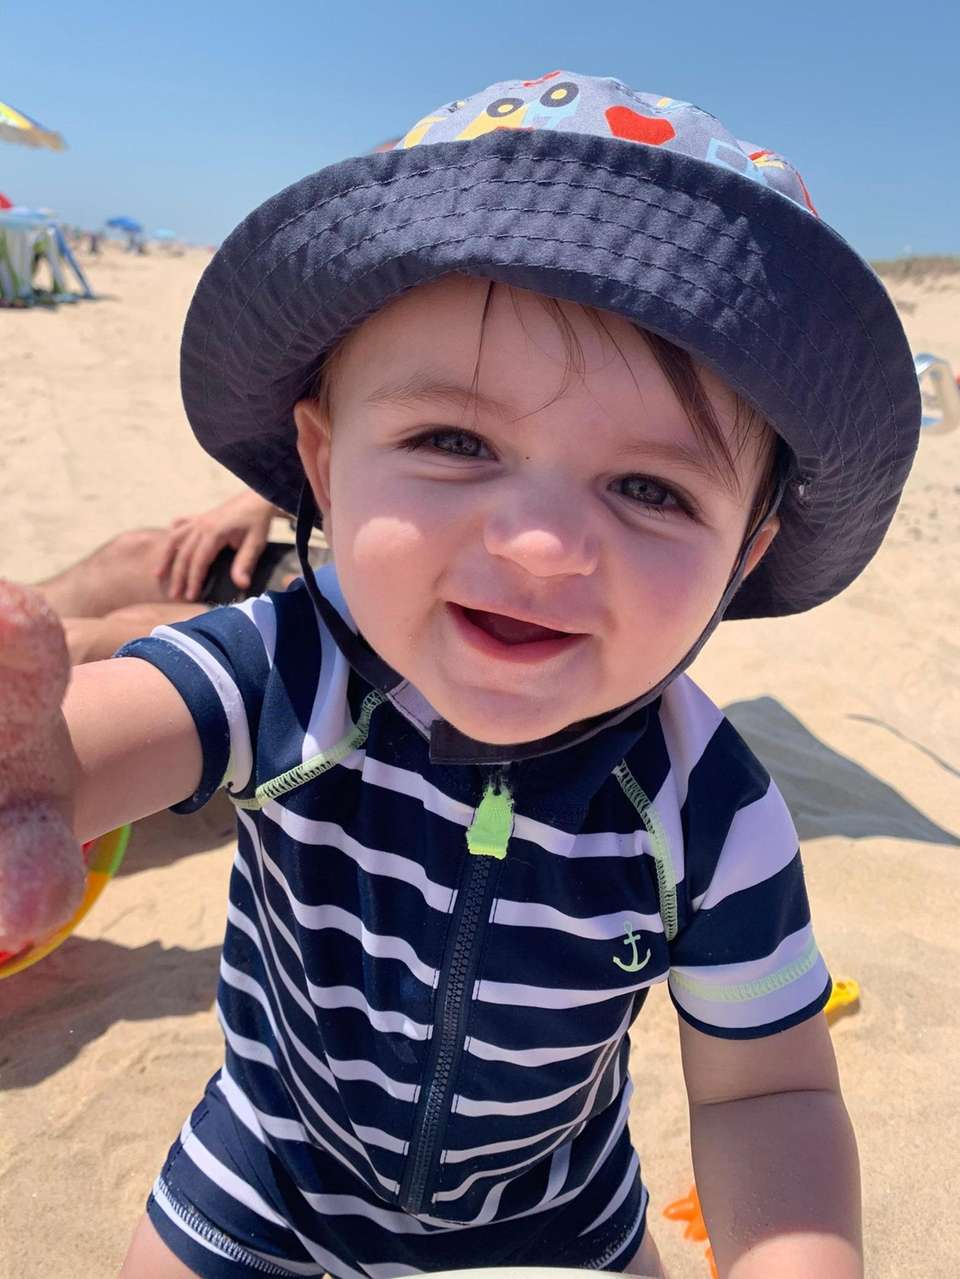 Selfies at the beach! Nico Nese, 10 months